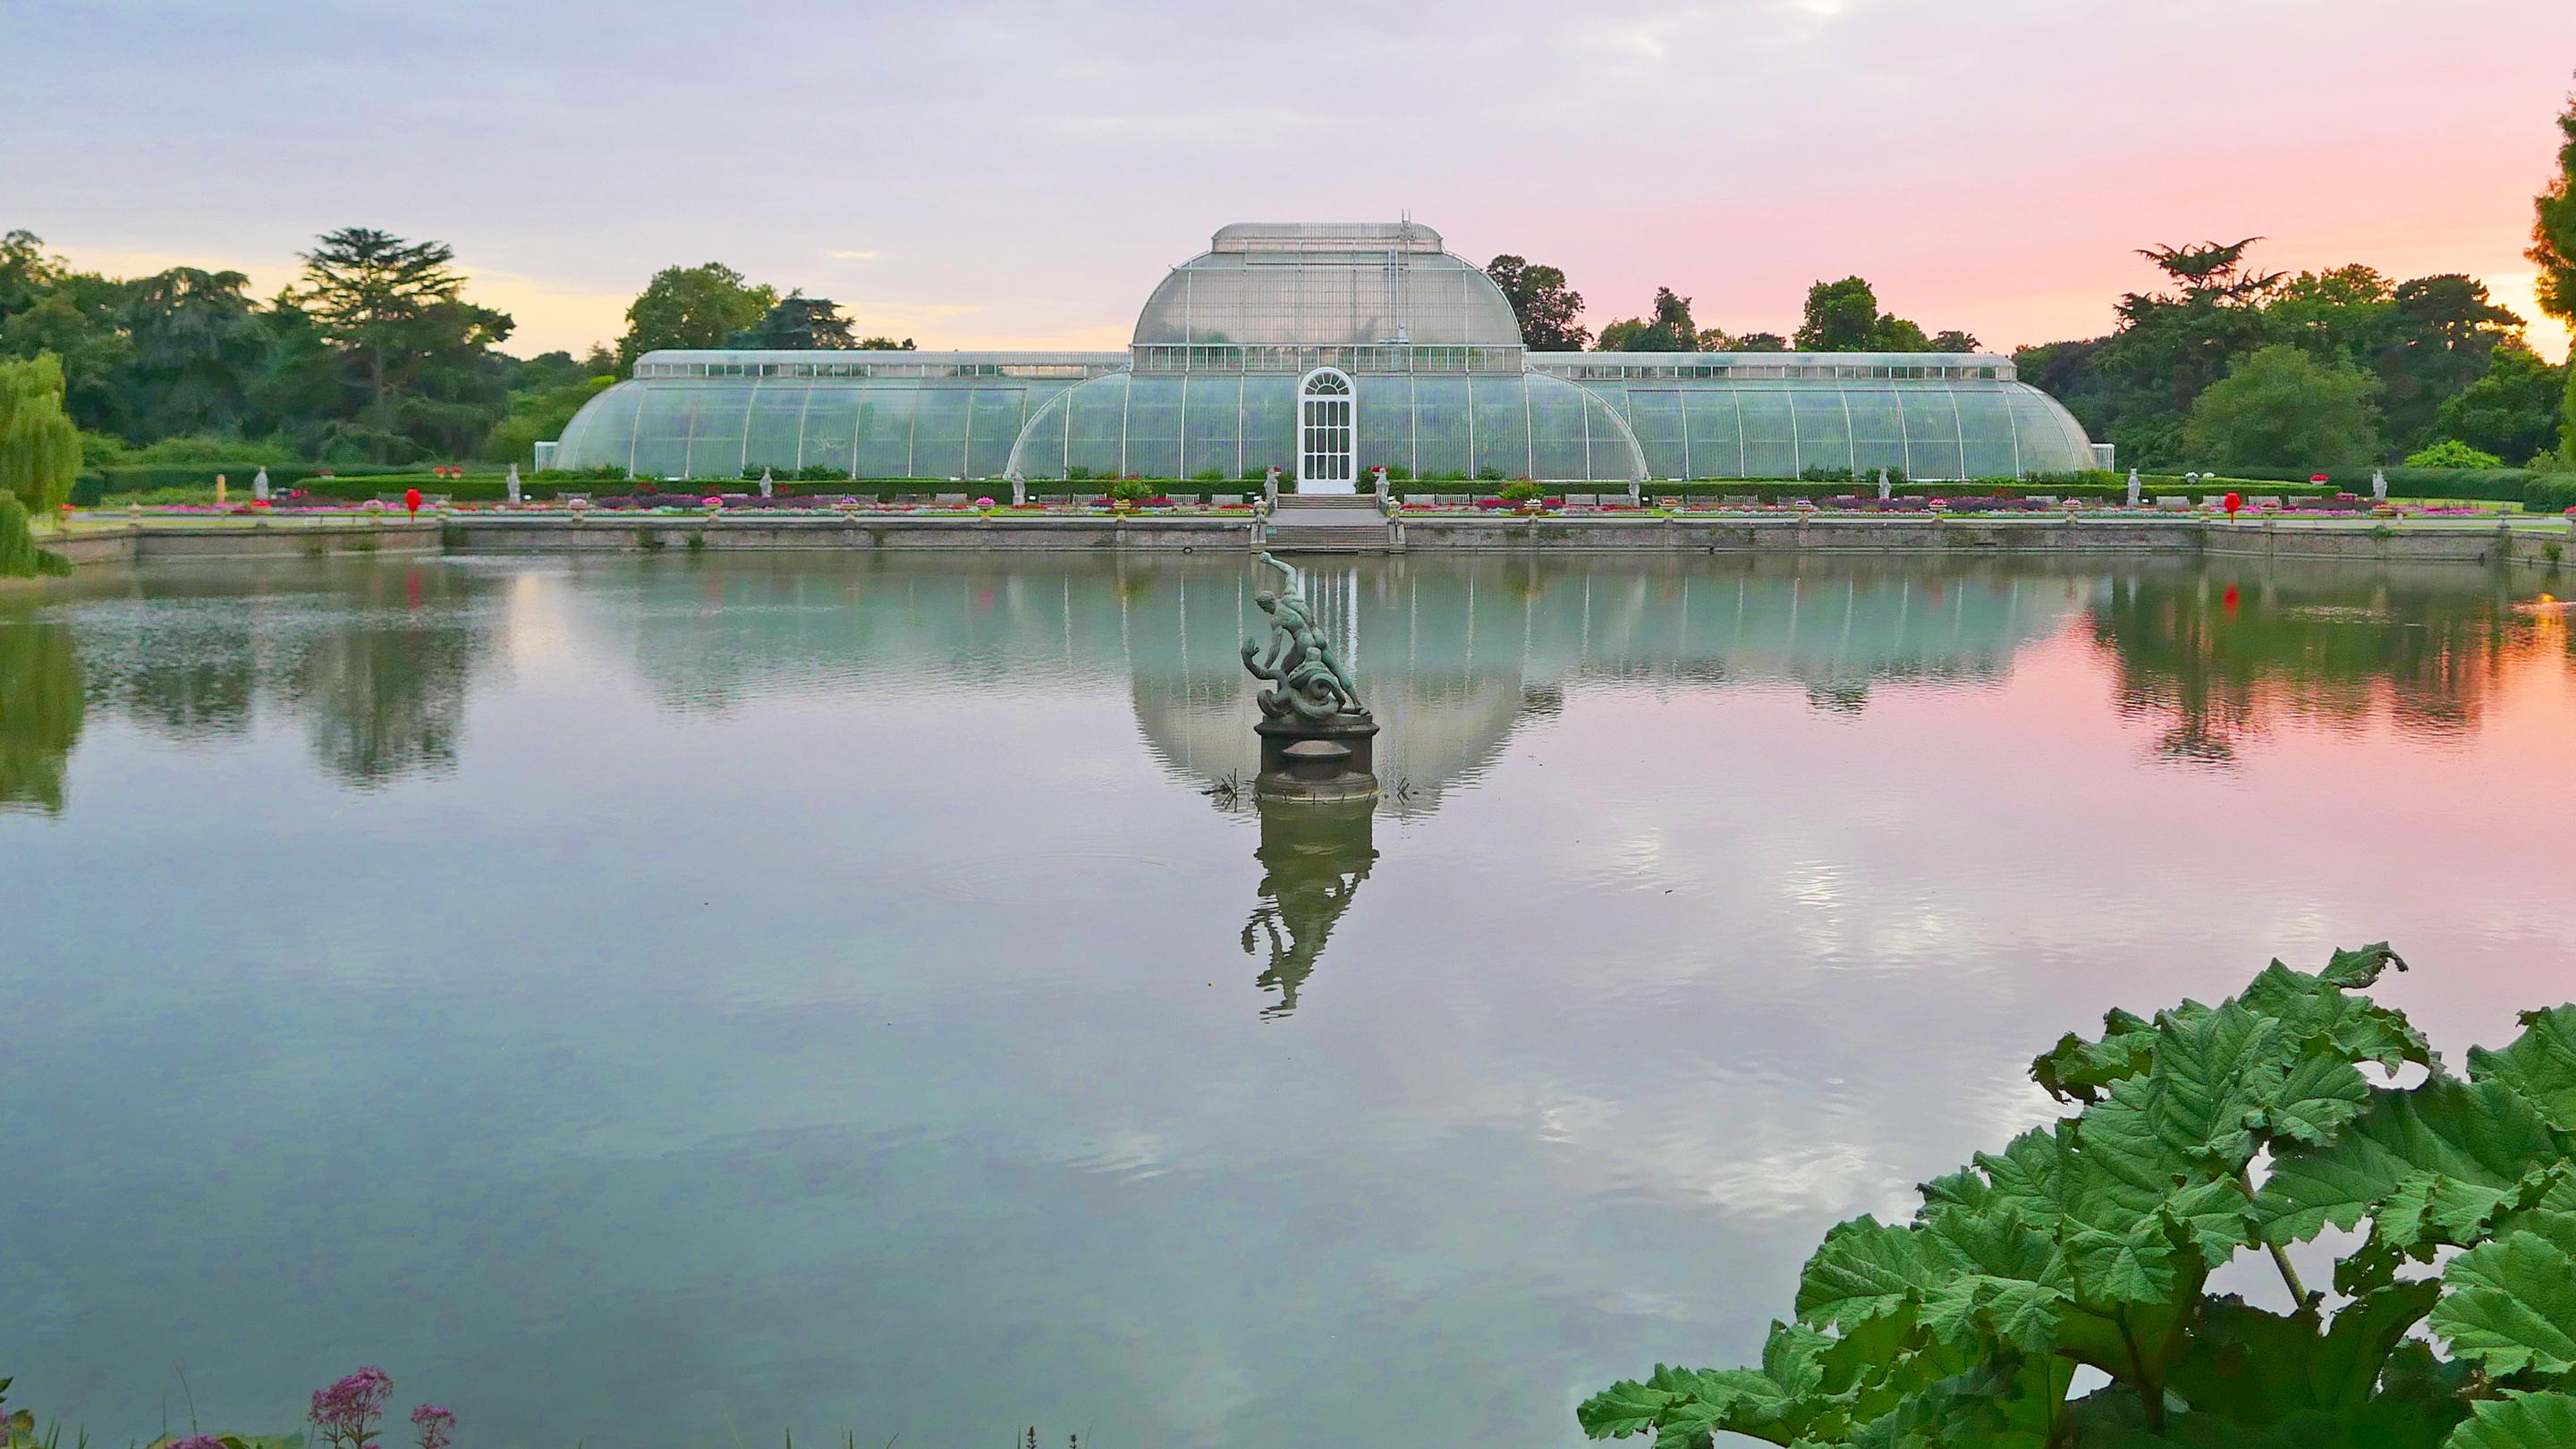 The iconic Palm House at Kew